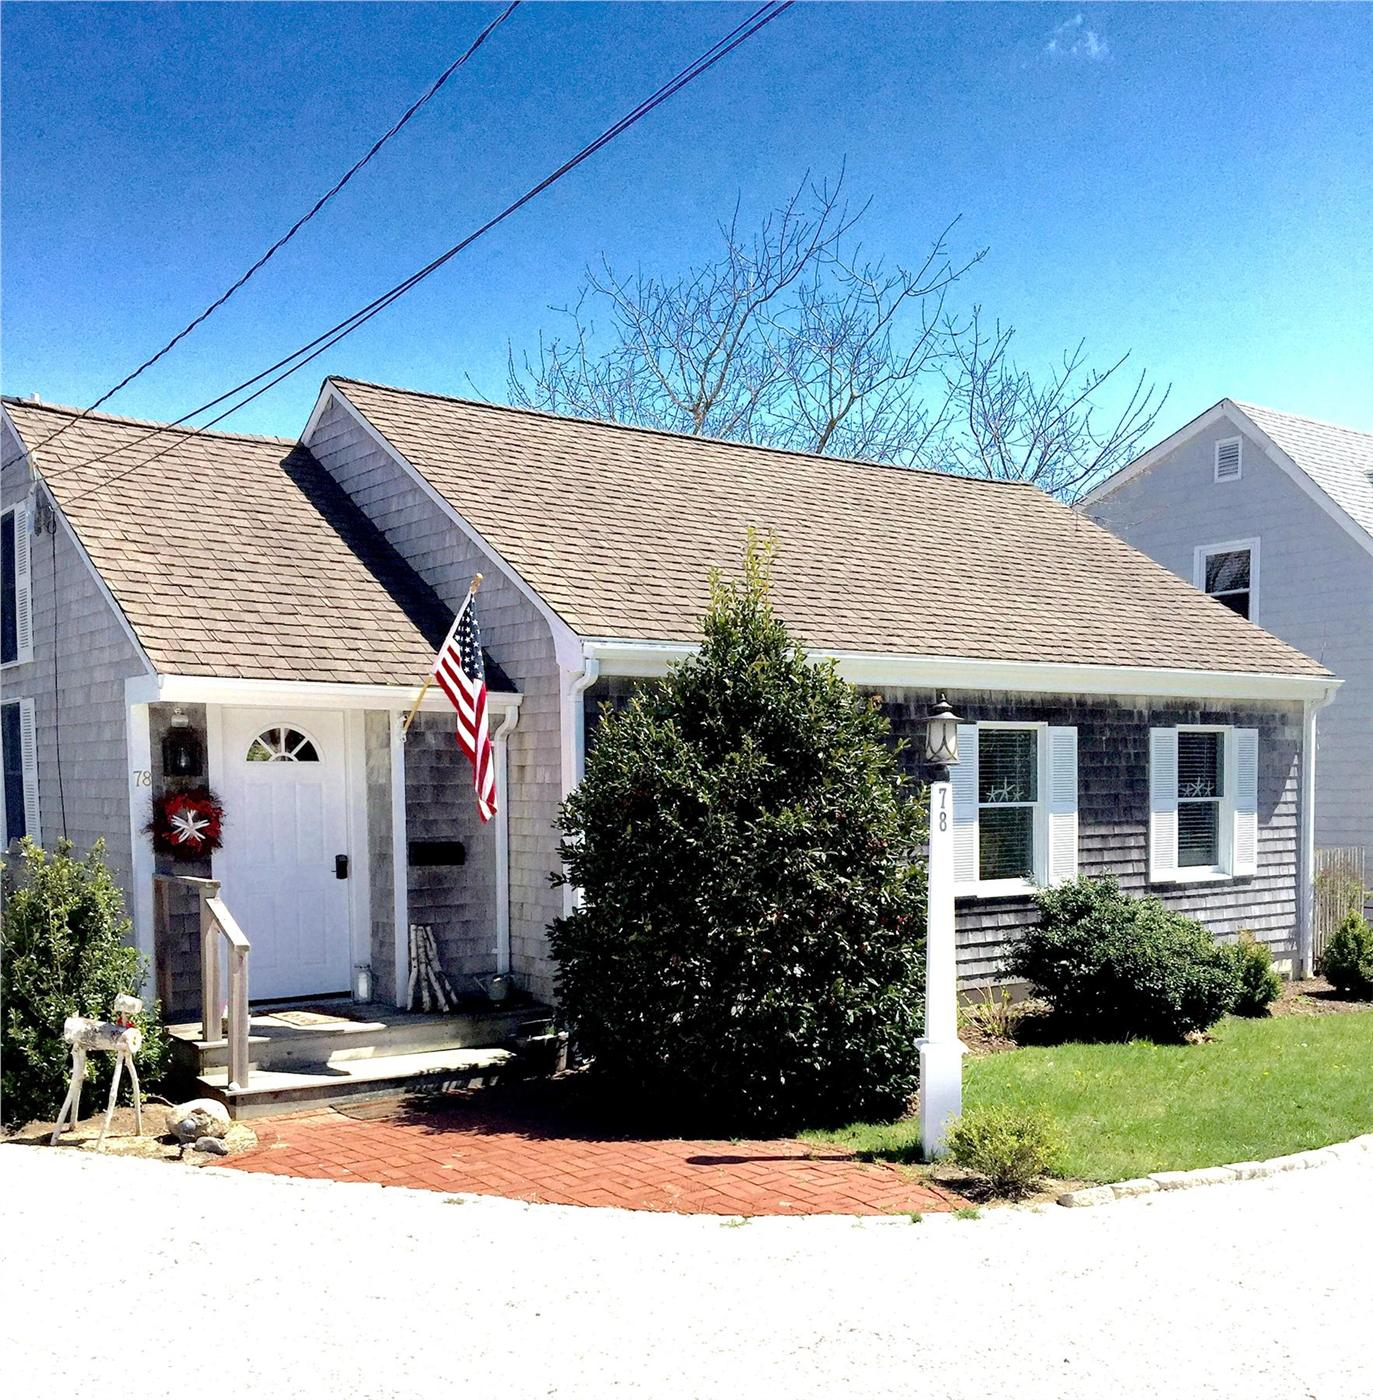 Yarmouth Vacation Rental Home In Cape Cod MA 02673, 0.4